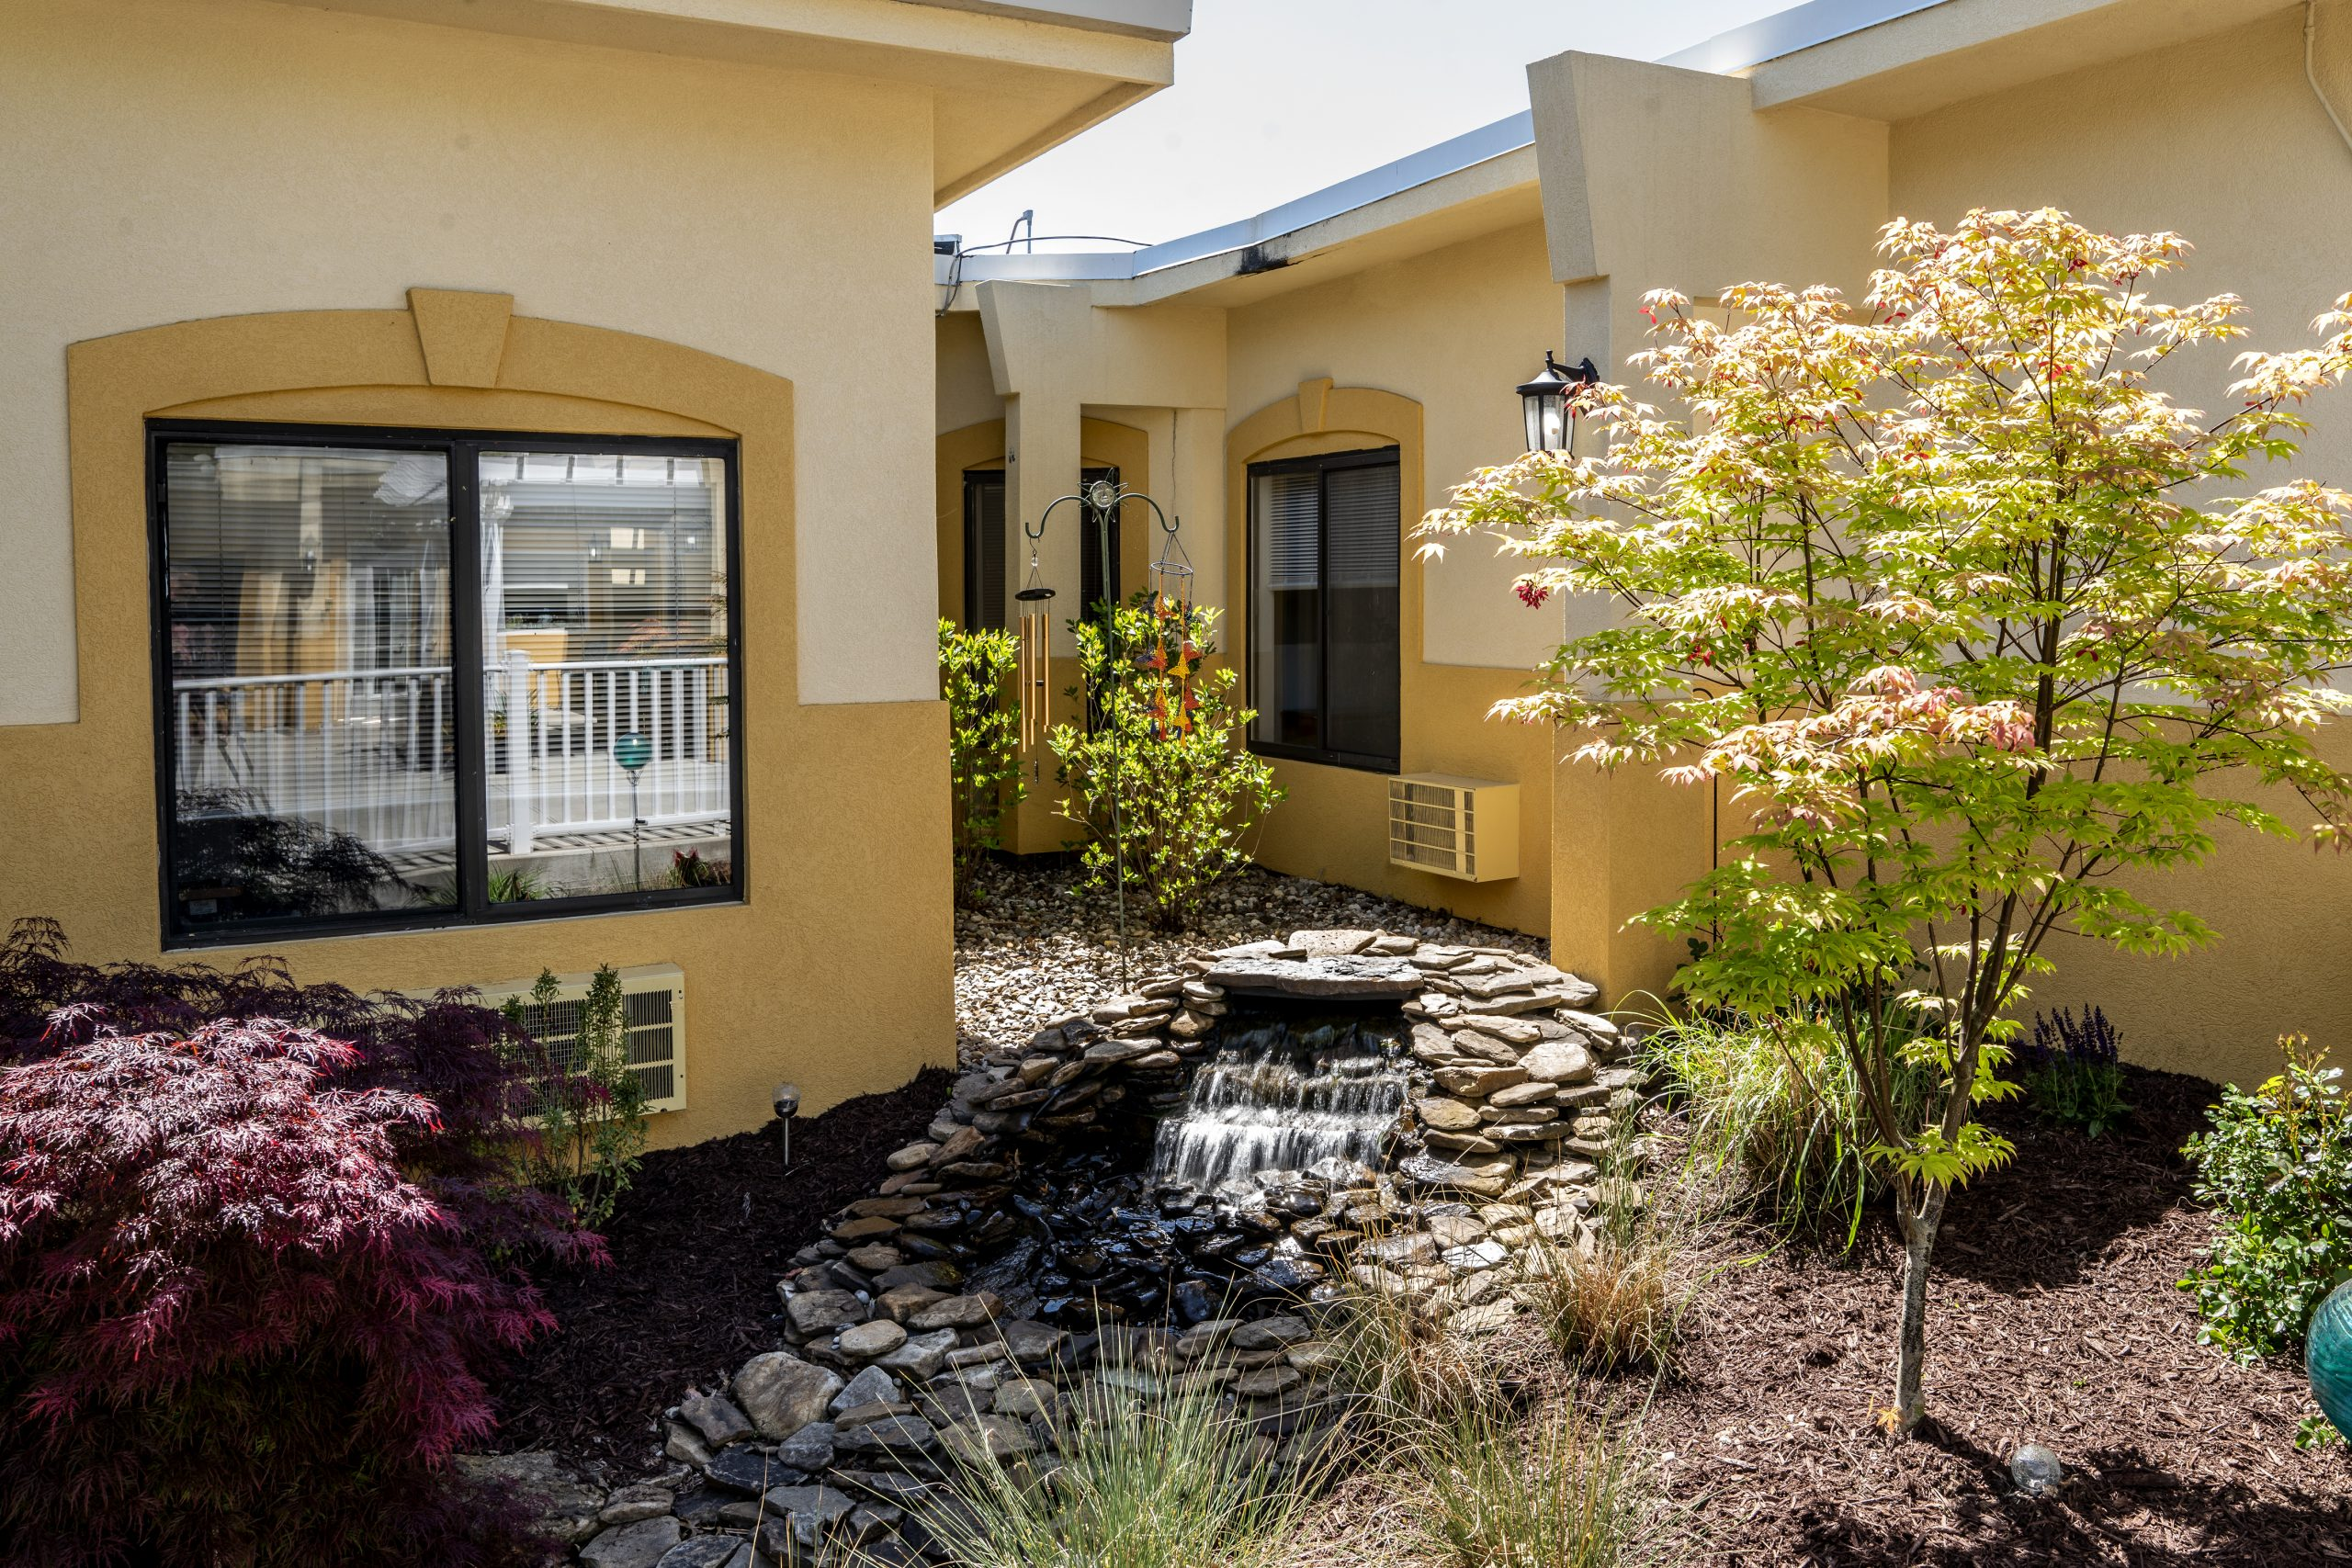 Courtyard area at Stonerise Parkersburg with small waterfall, wind chimes and trees